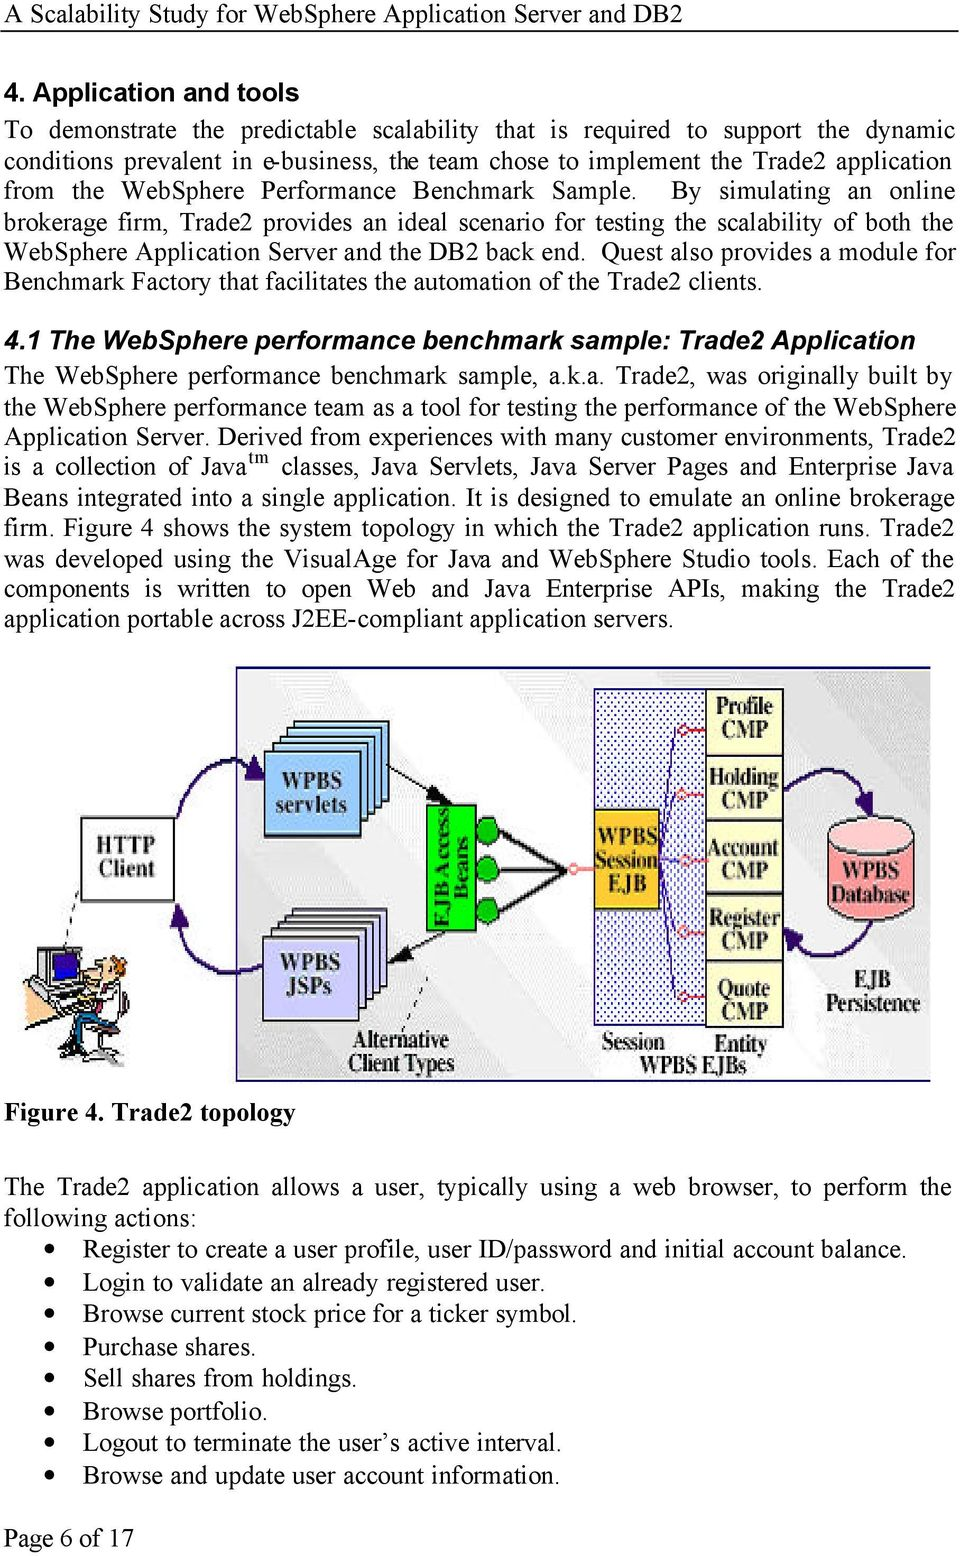 By simulating an online brokerage firm, Trade2 provides an ideal scenario for testing the scalability of both the WebSphere Application and the DB2 back end.